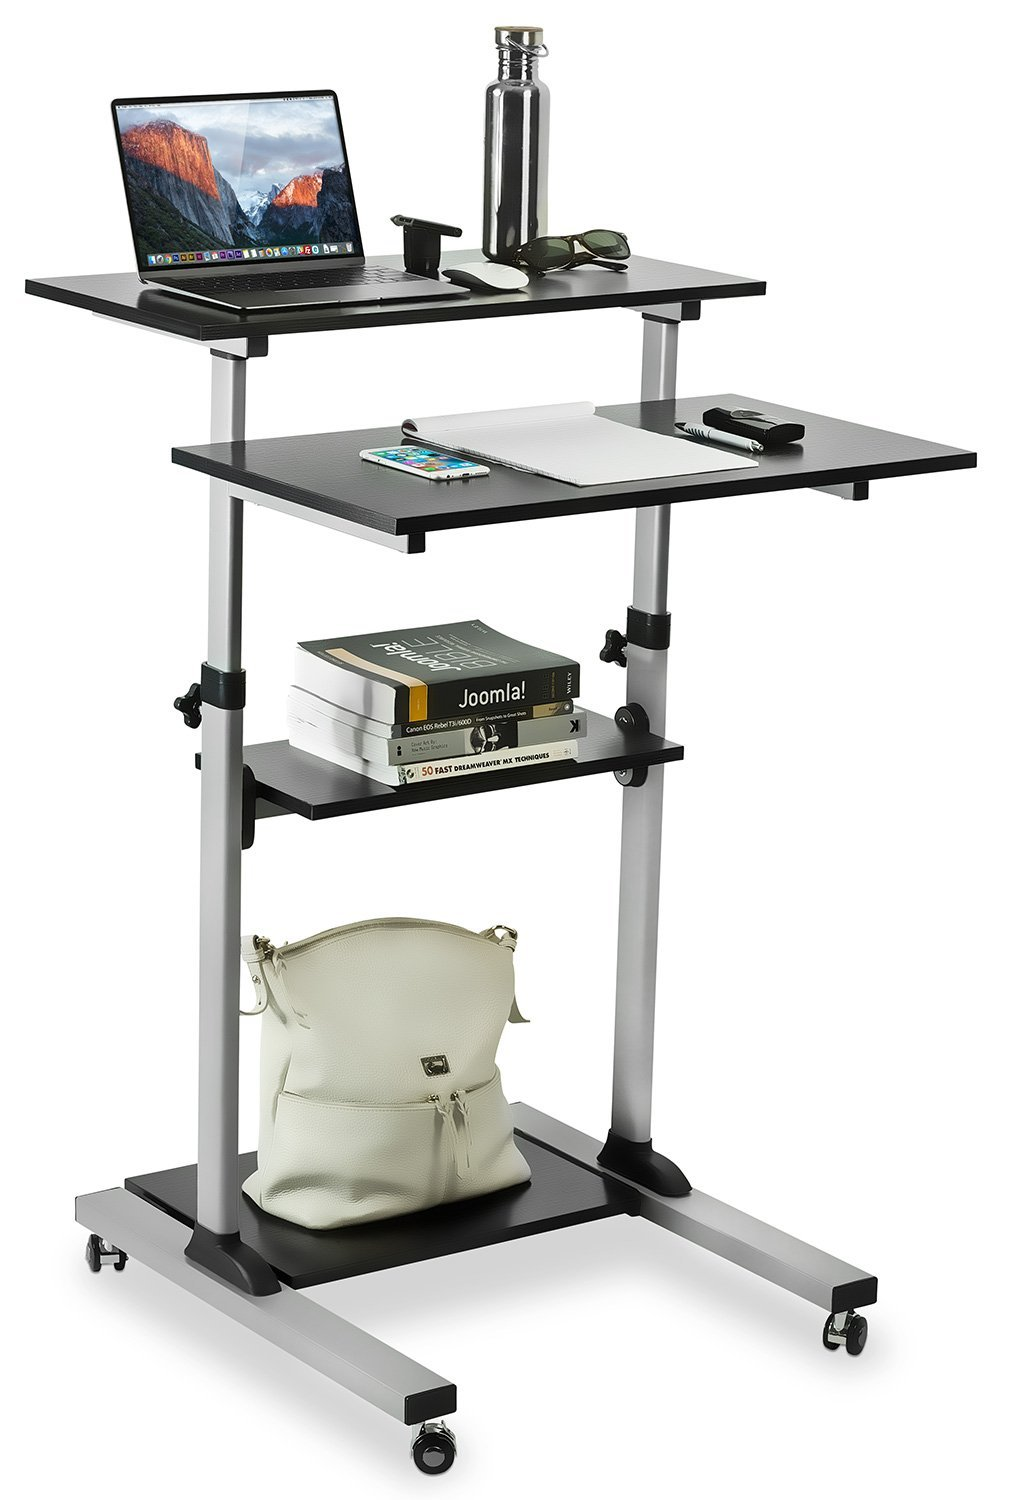 mountit mobile stand up desk height adjustable computer work station rolling